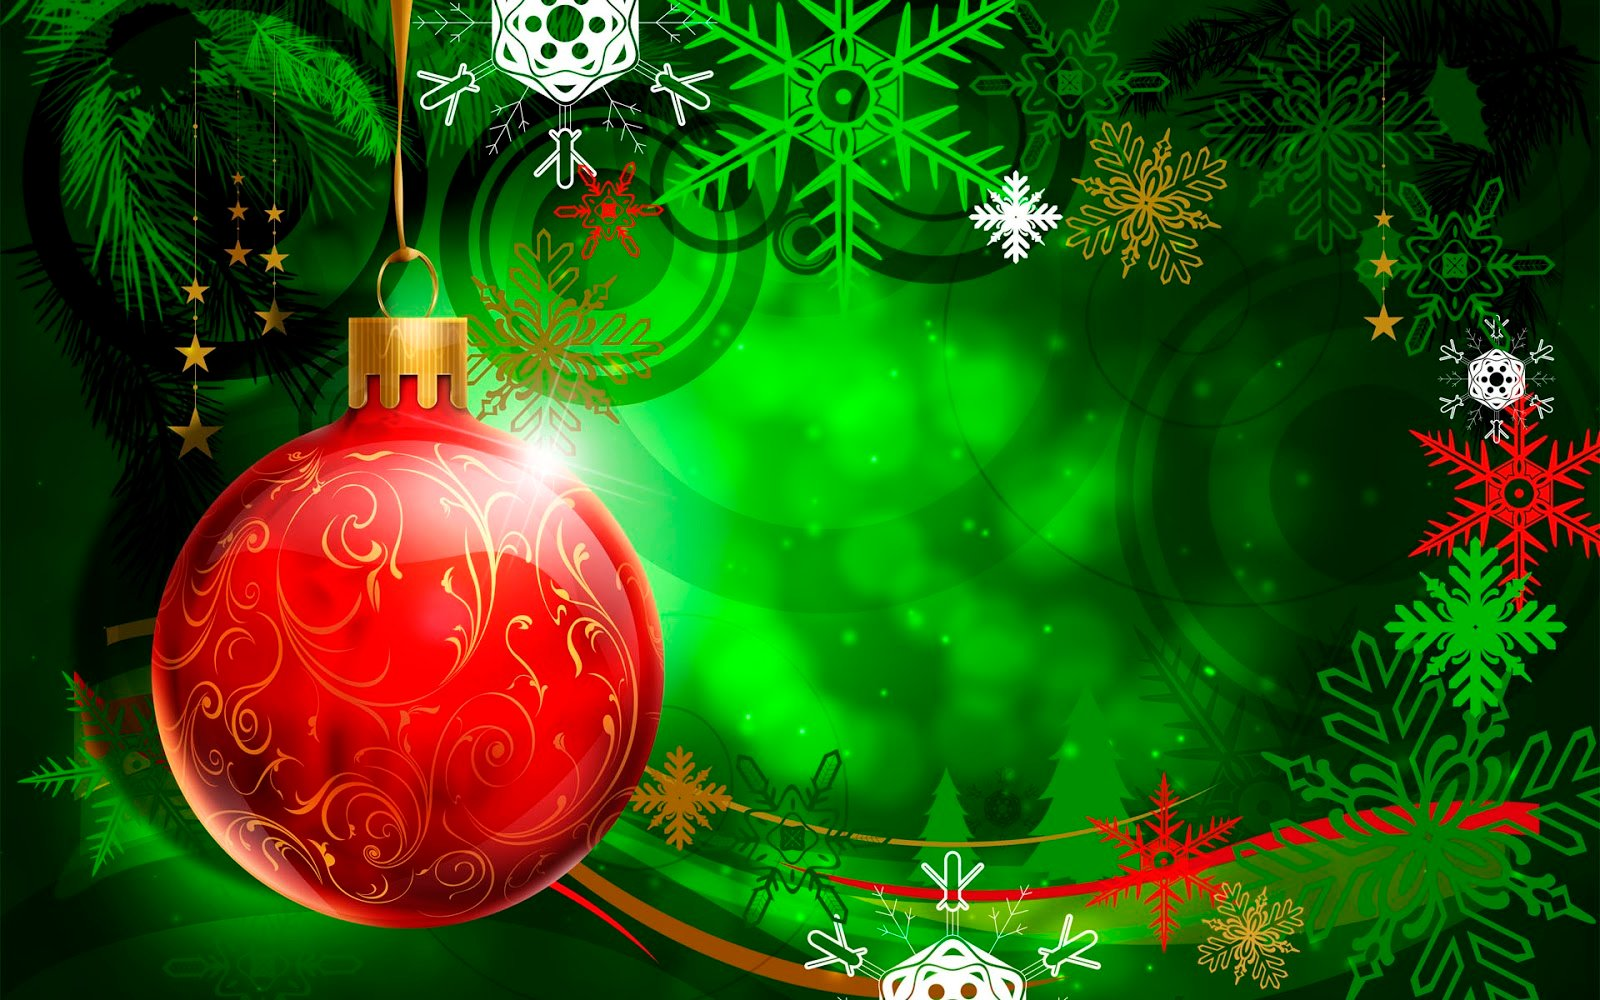 heart touching christmas screensavers christmas images or wallpapers 1600x1000